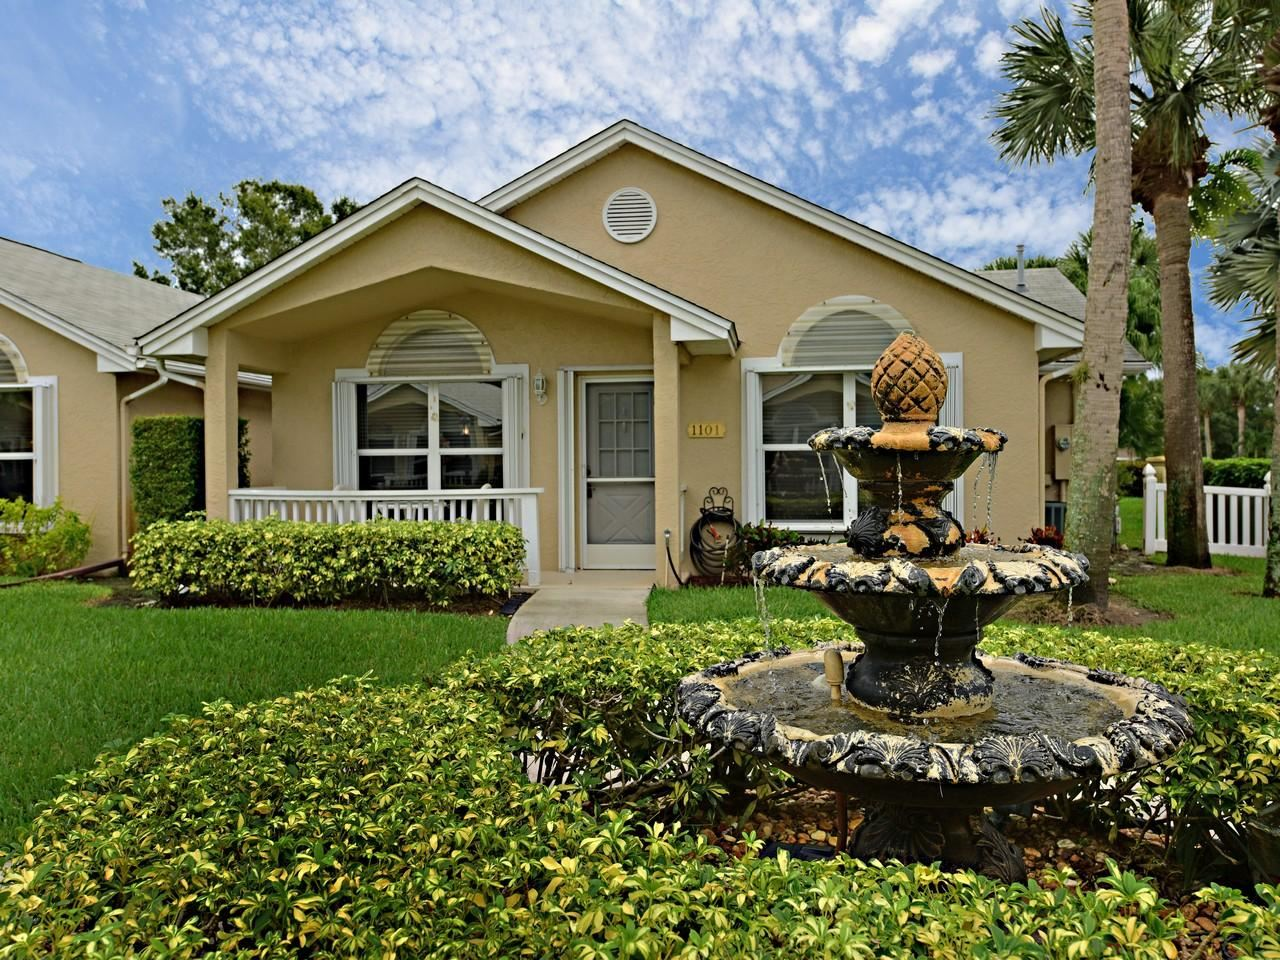 1101 NW Lombardy Drive, Port Saint Lucie, FL 34986 - #: RX-10665428